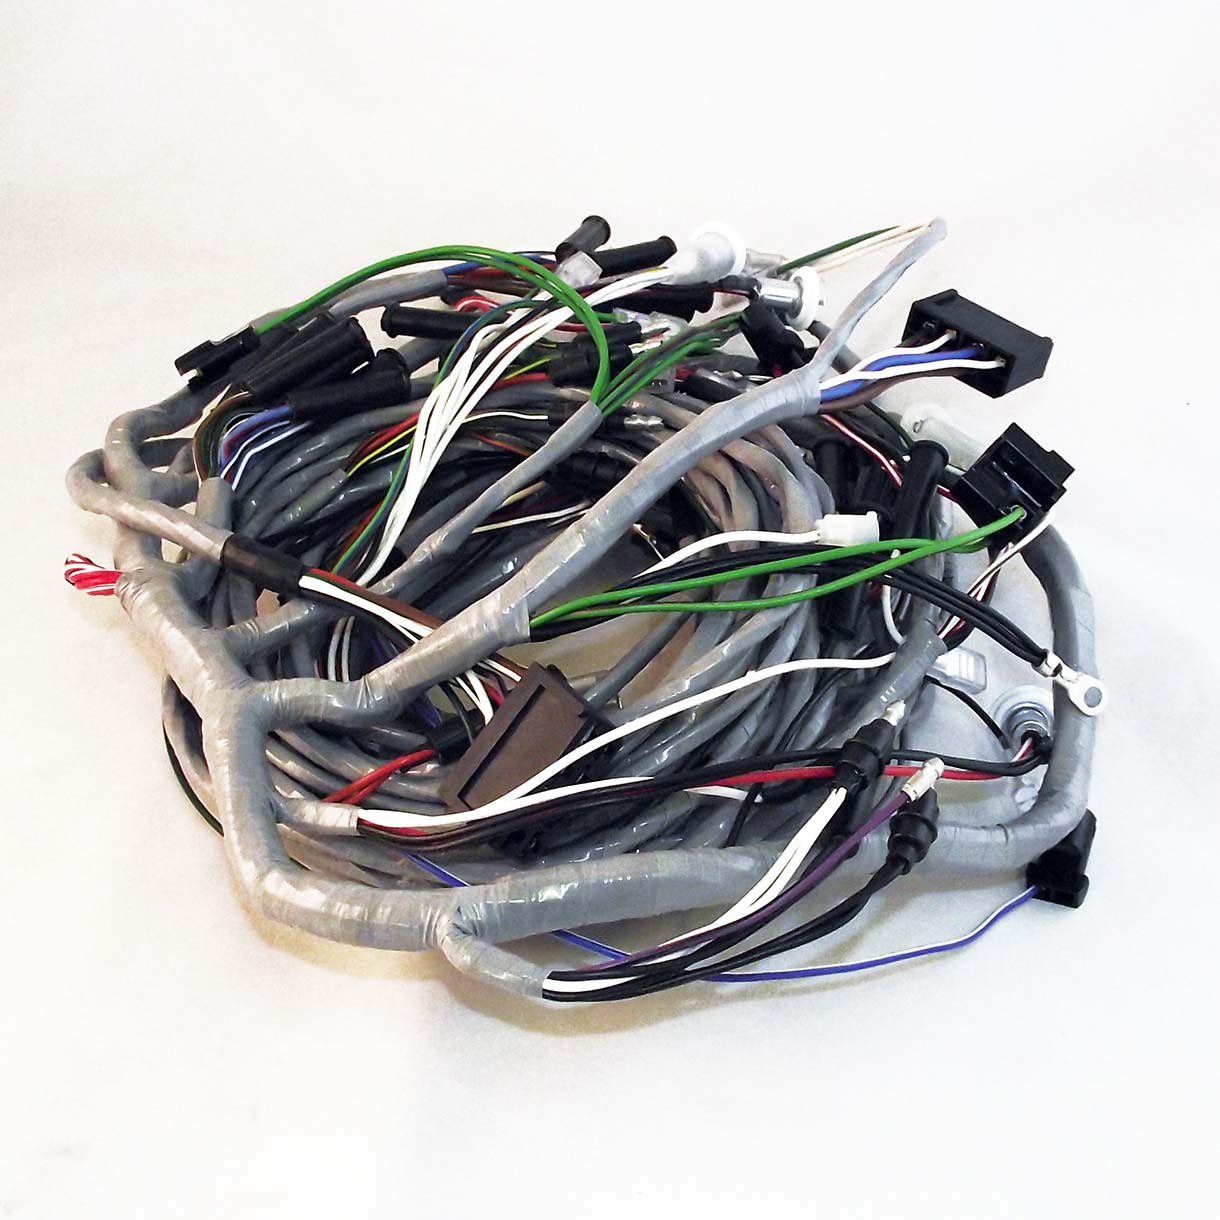 Ford Cortina Mk1 Gt Wiring Harness Set Connectors